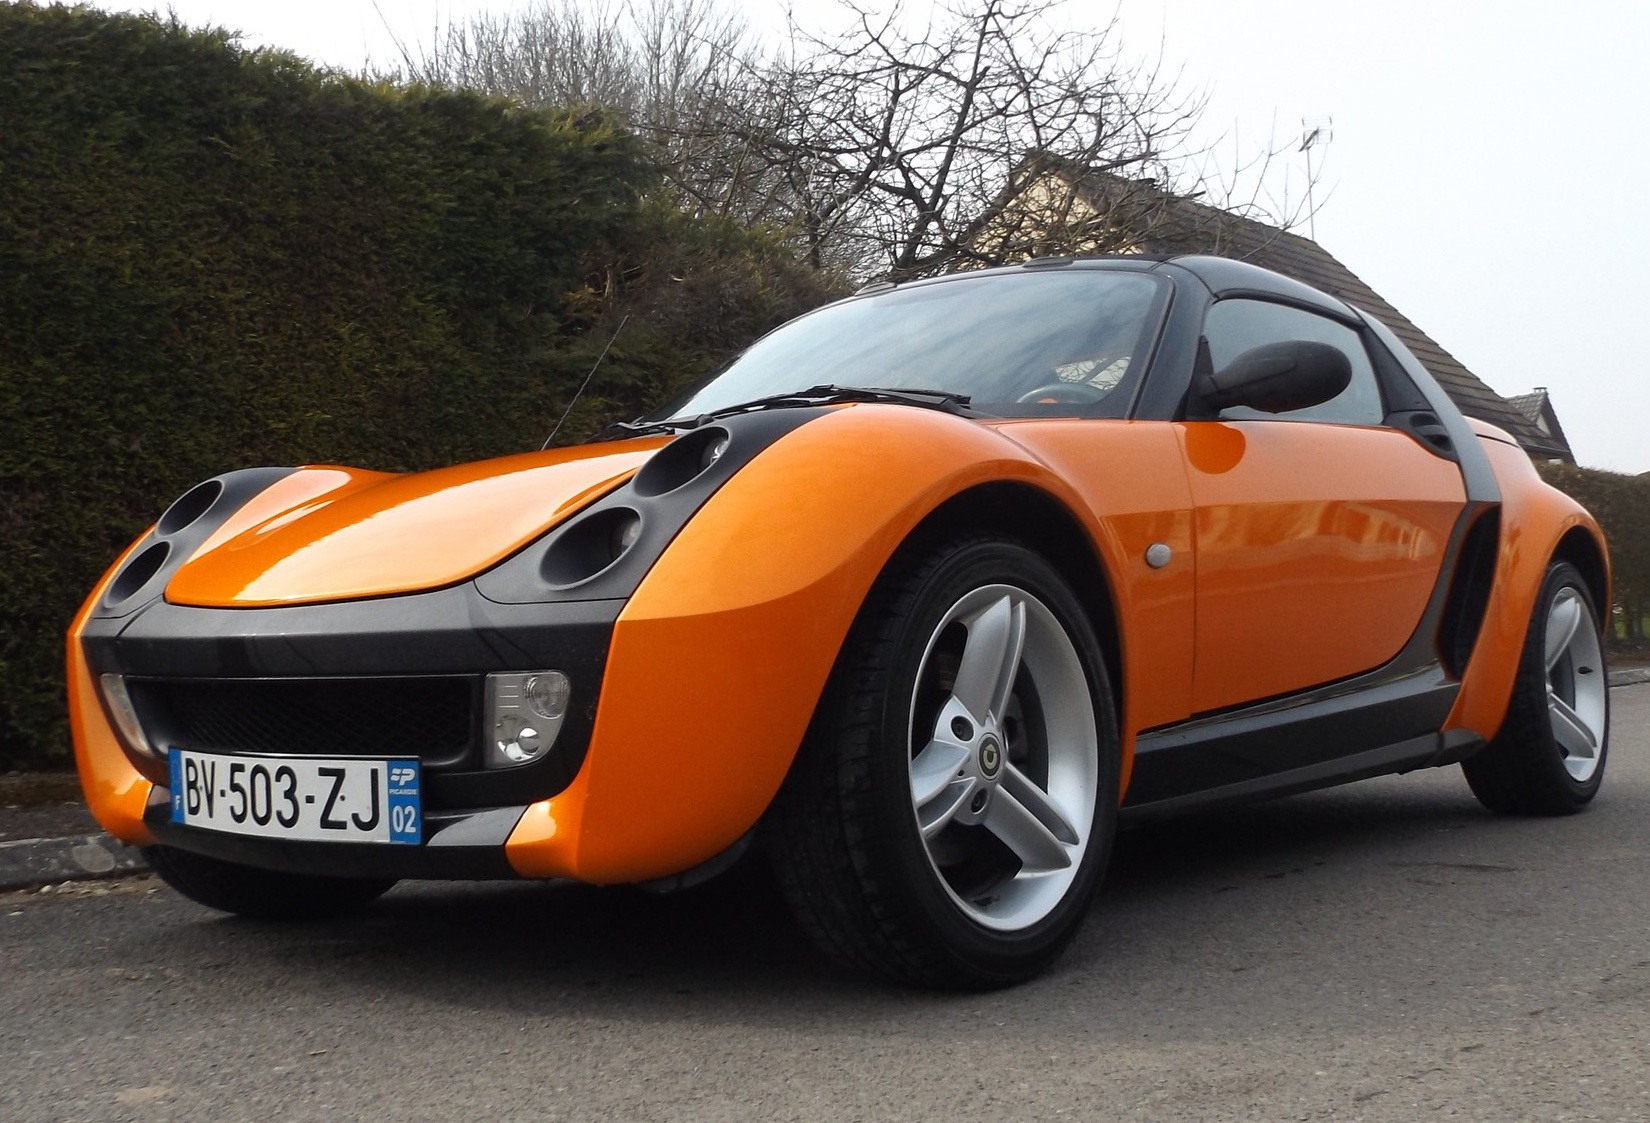 marche arri u00e8re   la smart roadster 82cv